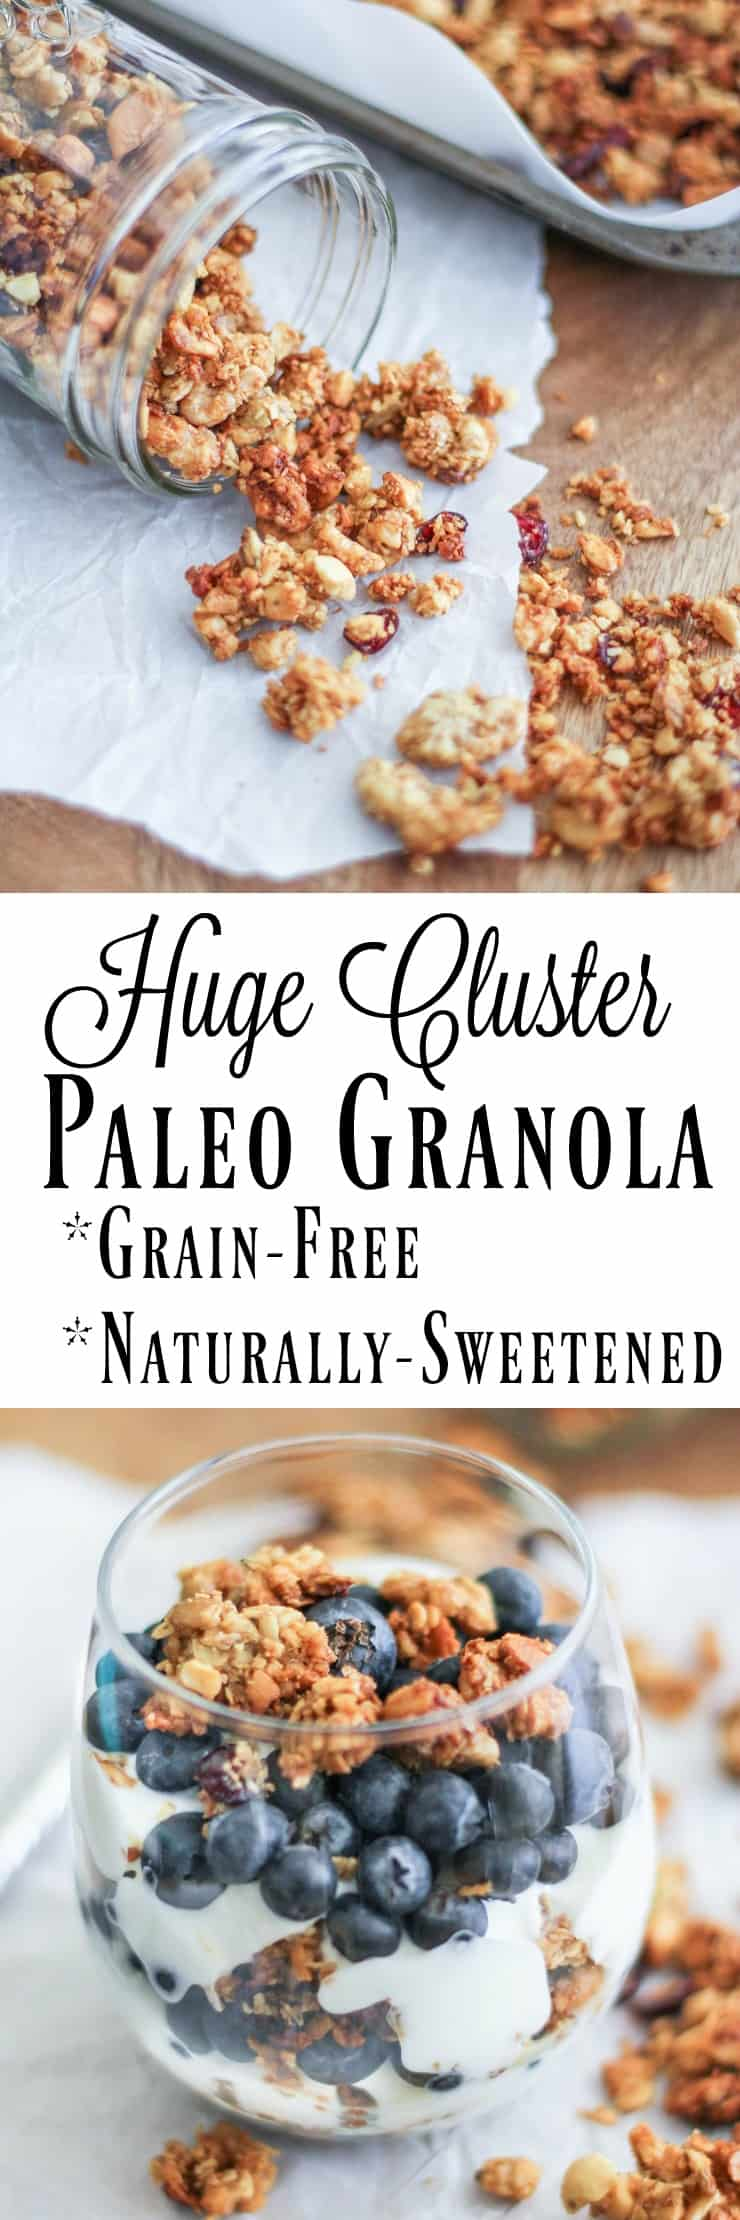 Paleo Granola - grain-free, naturally sweetened, gluten-free, and HUGE cluster granola! Made with nuts, seeds, and pure maple syrup for a delicious breakfast or snack